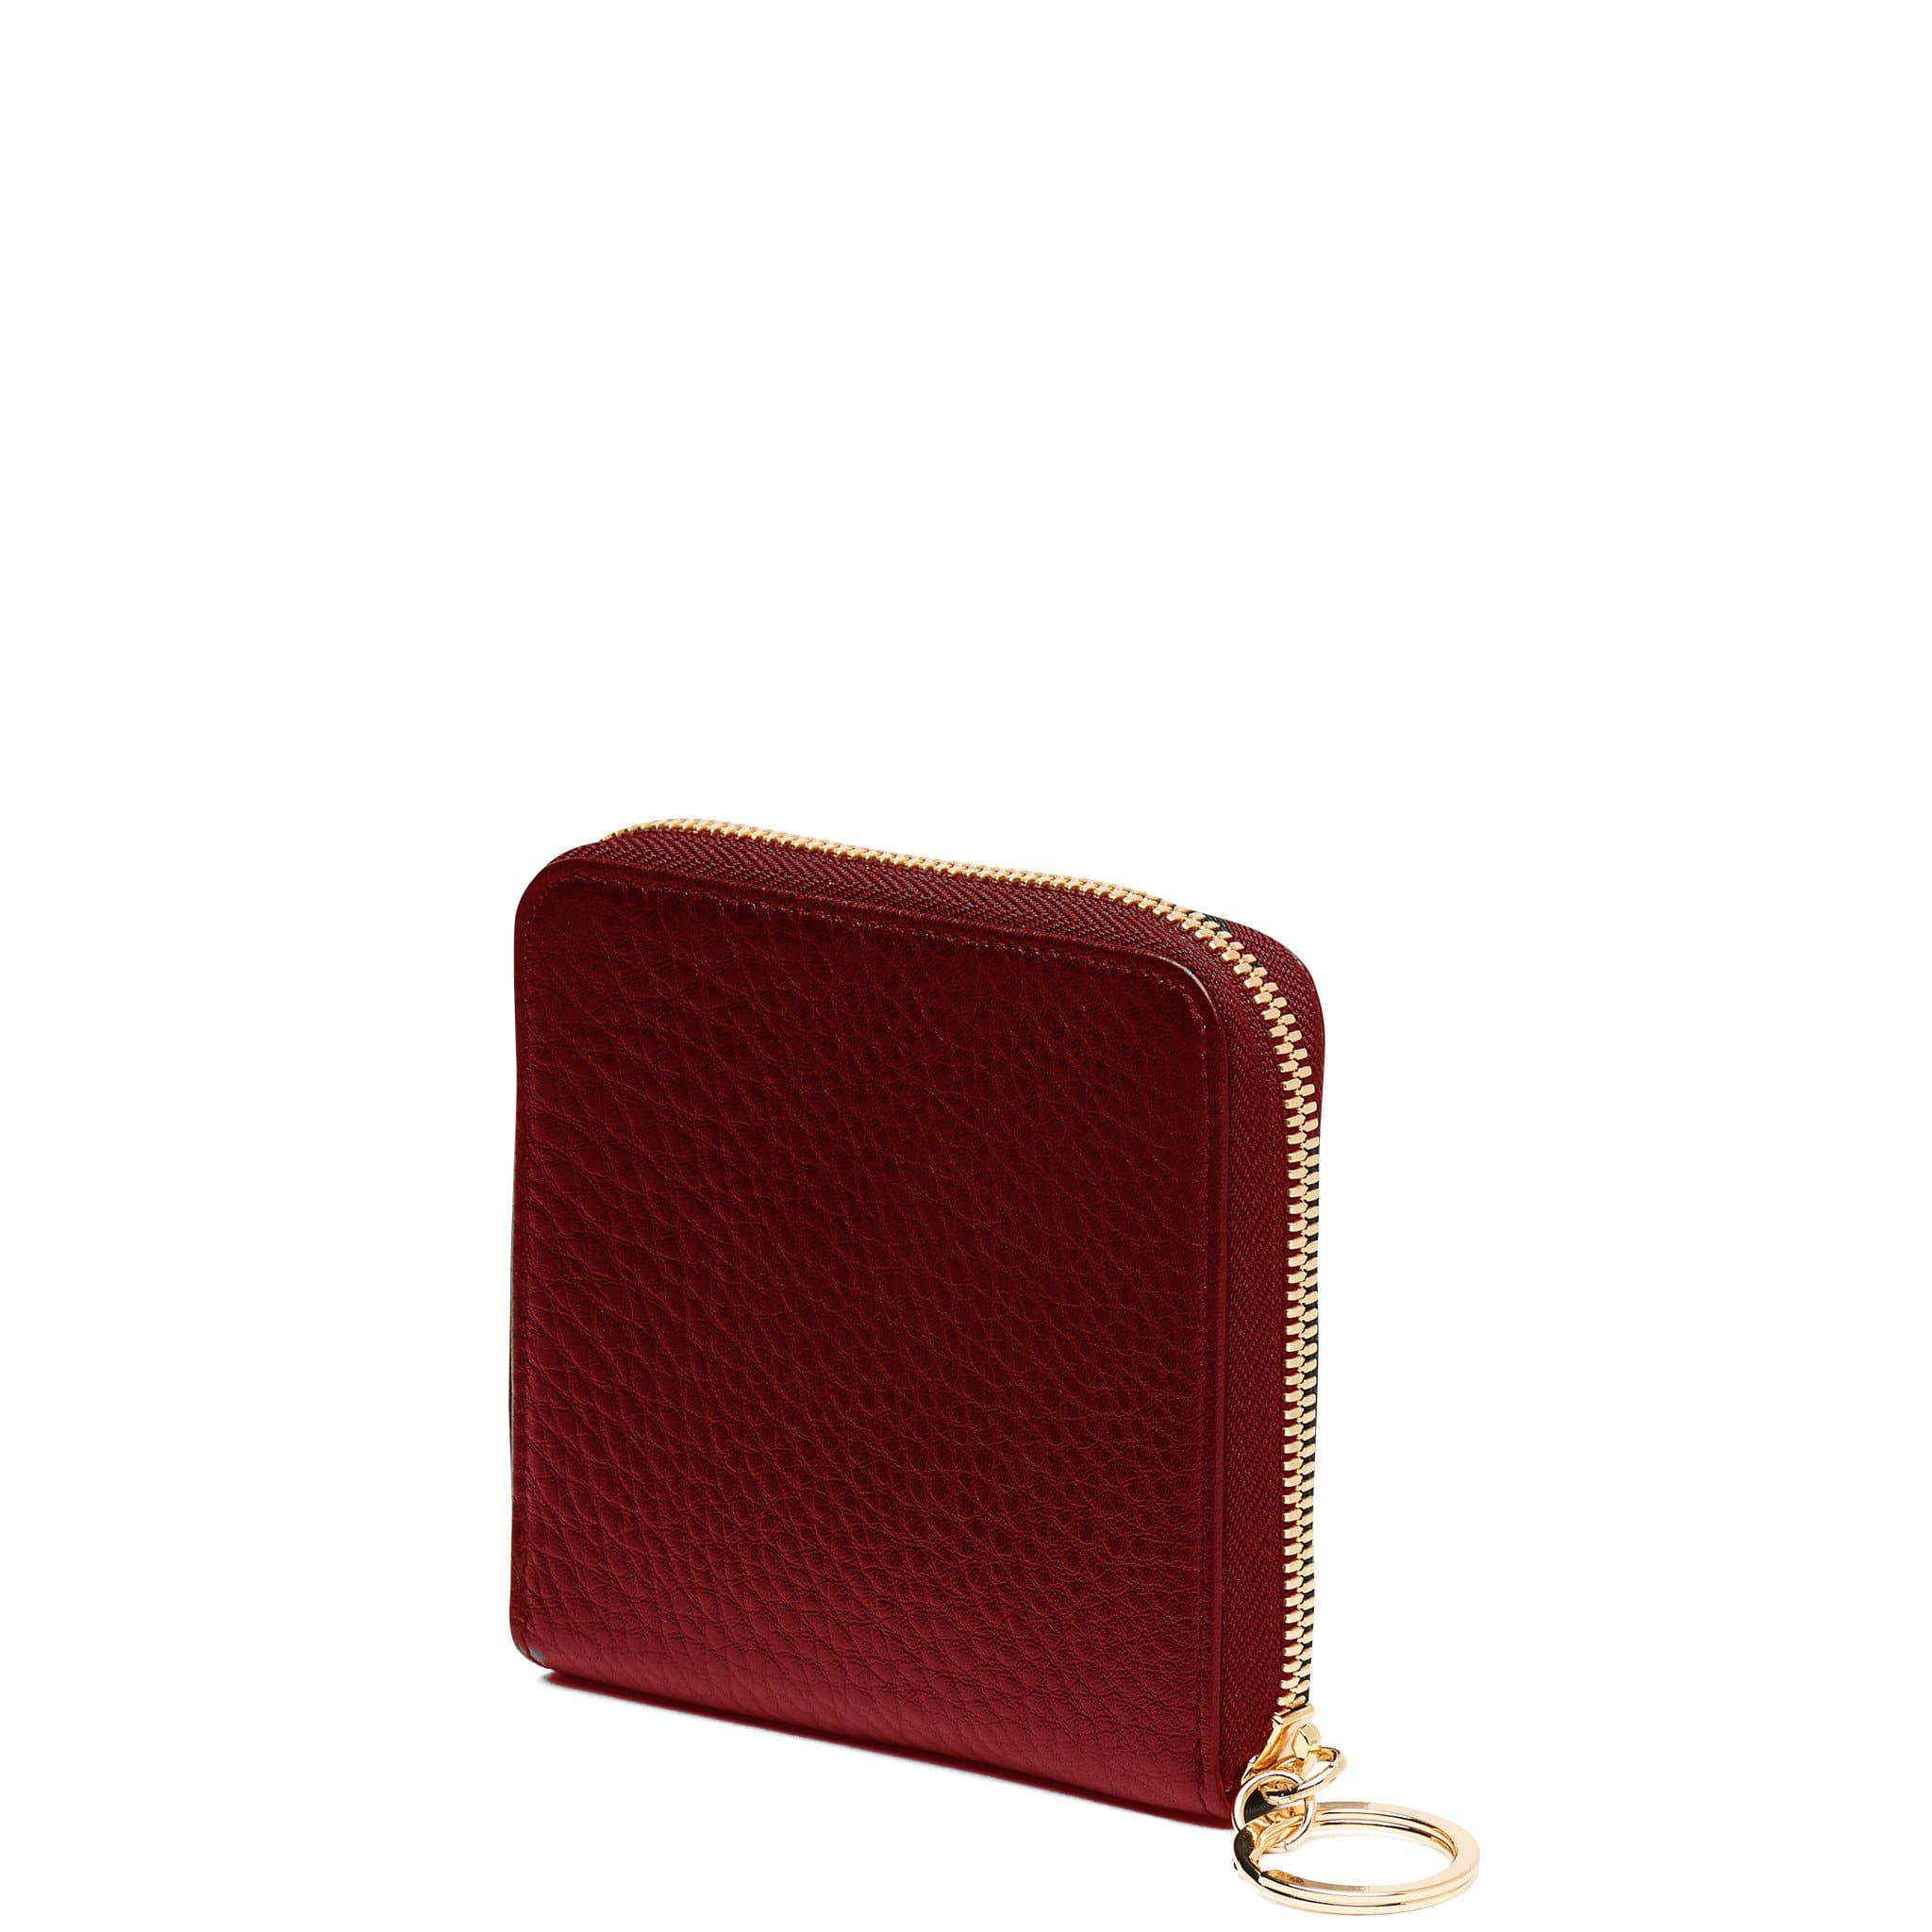 Half Zip Around Wallet - Dark Wine - OAD NEW YORK - 3